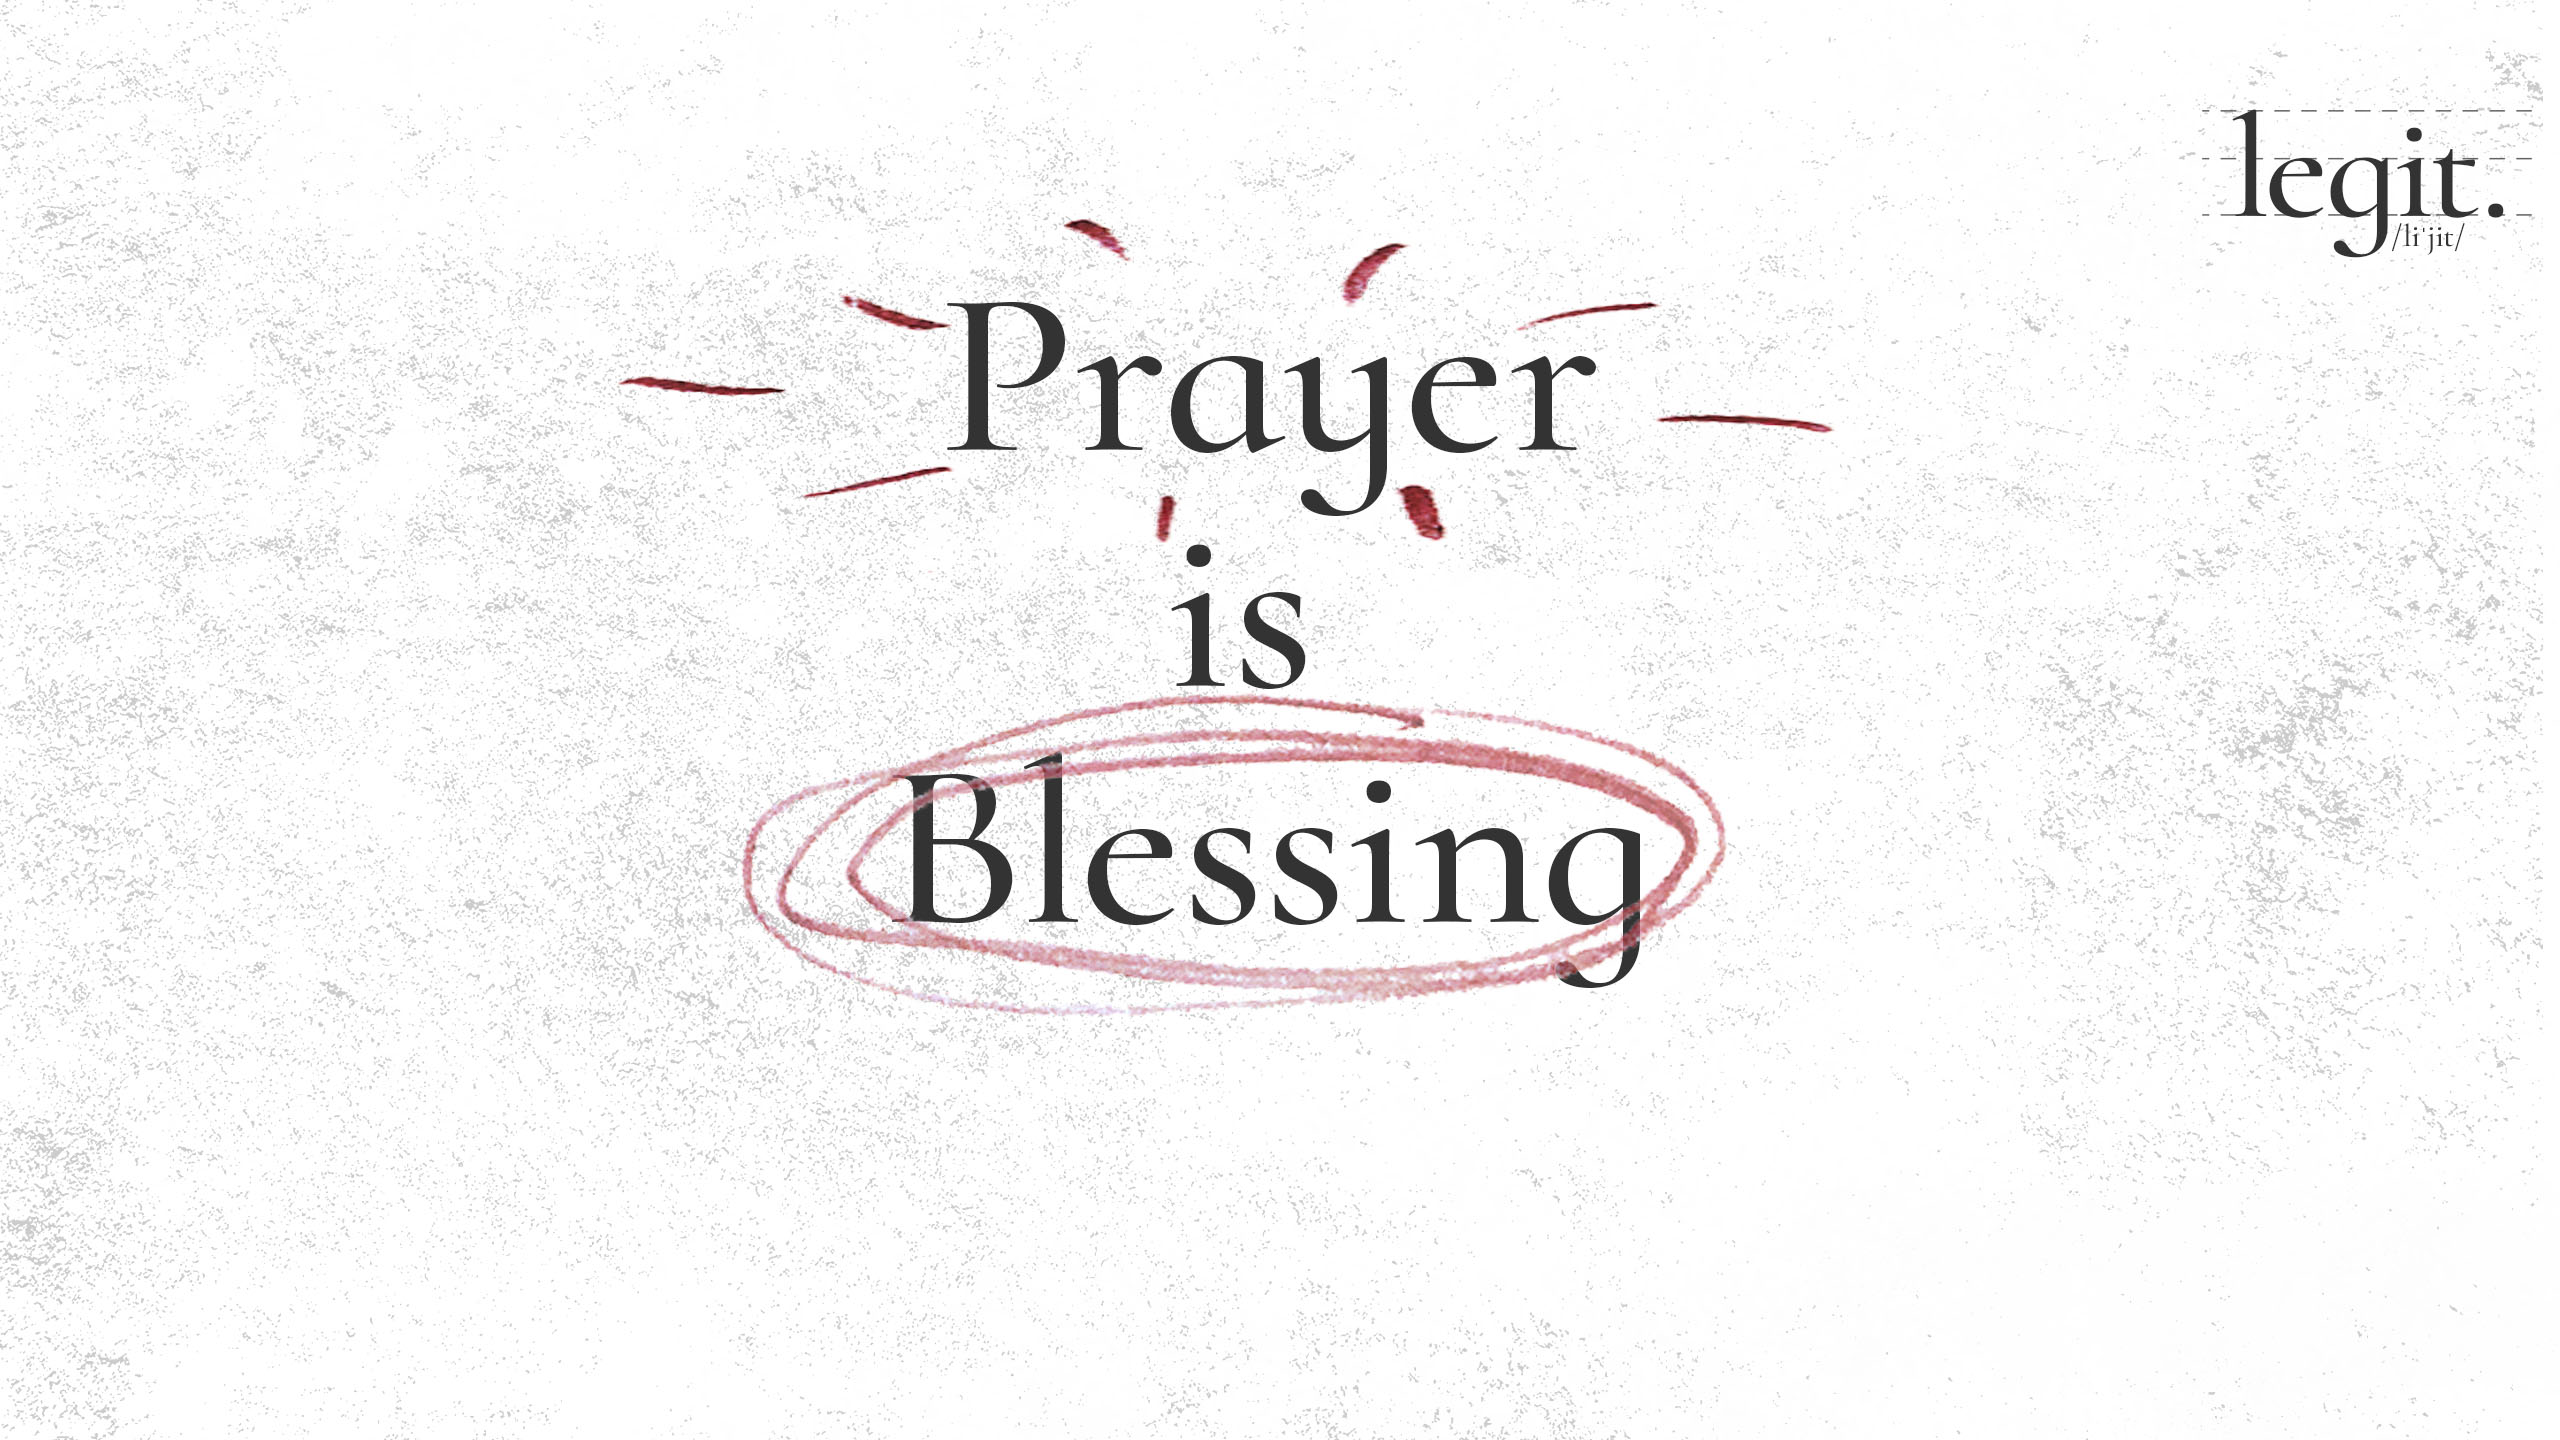 Legit: Prayer is Blessing